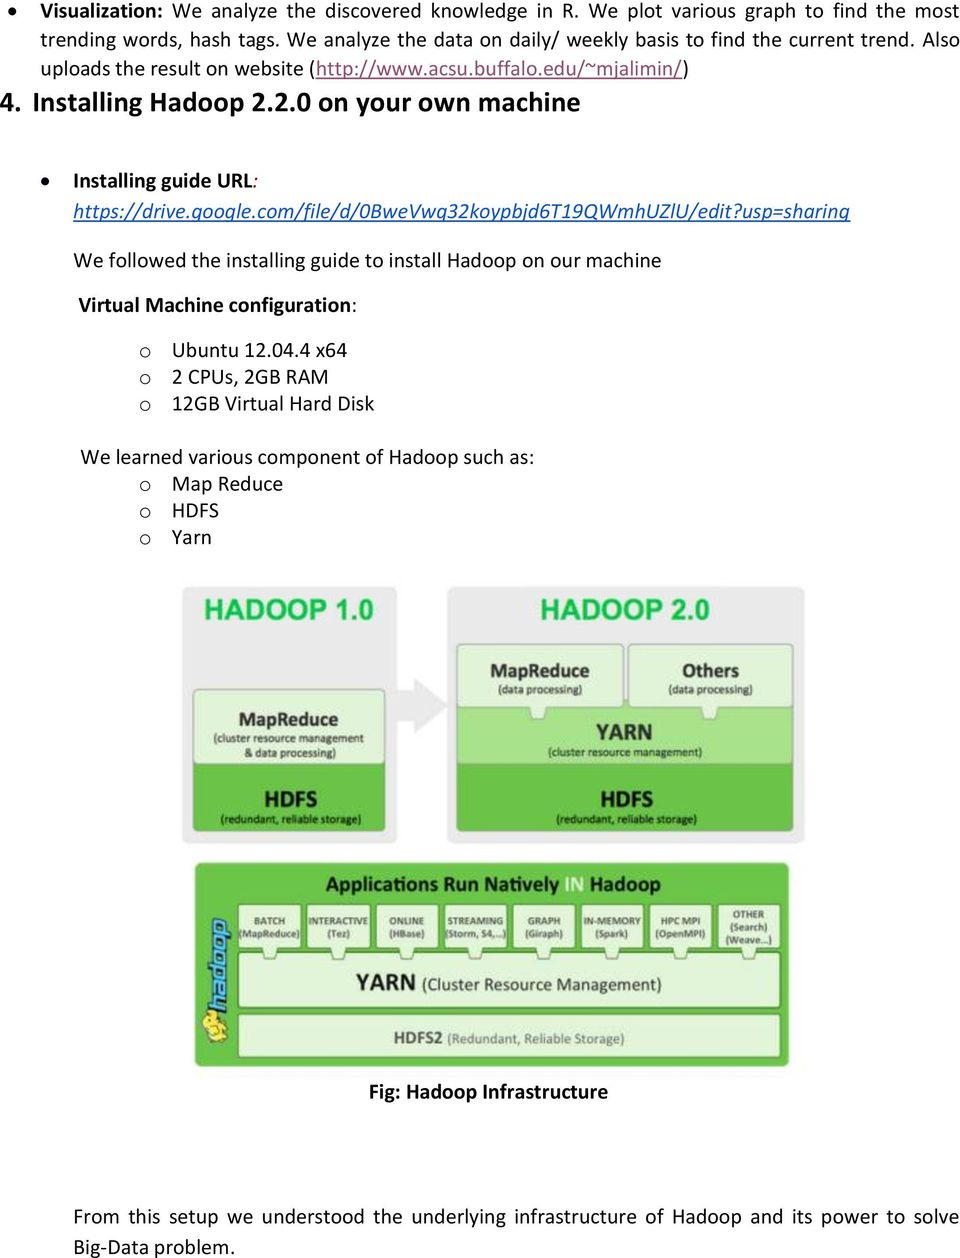 com/file/d/0bwevwq32koypbjd6t19qwmhuzlu/edit?usp=sharing We followed the installing guide to install Hadoop on our machine Virtual Machine configuration: o Ubuntu 12.04.